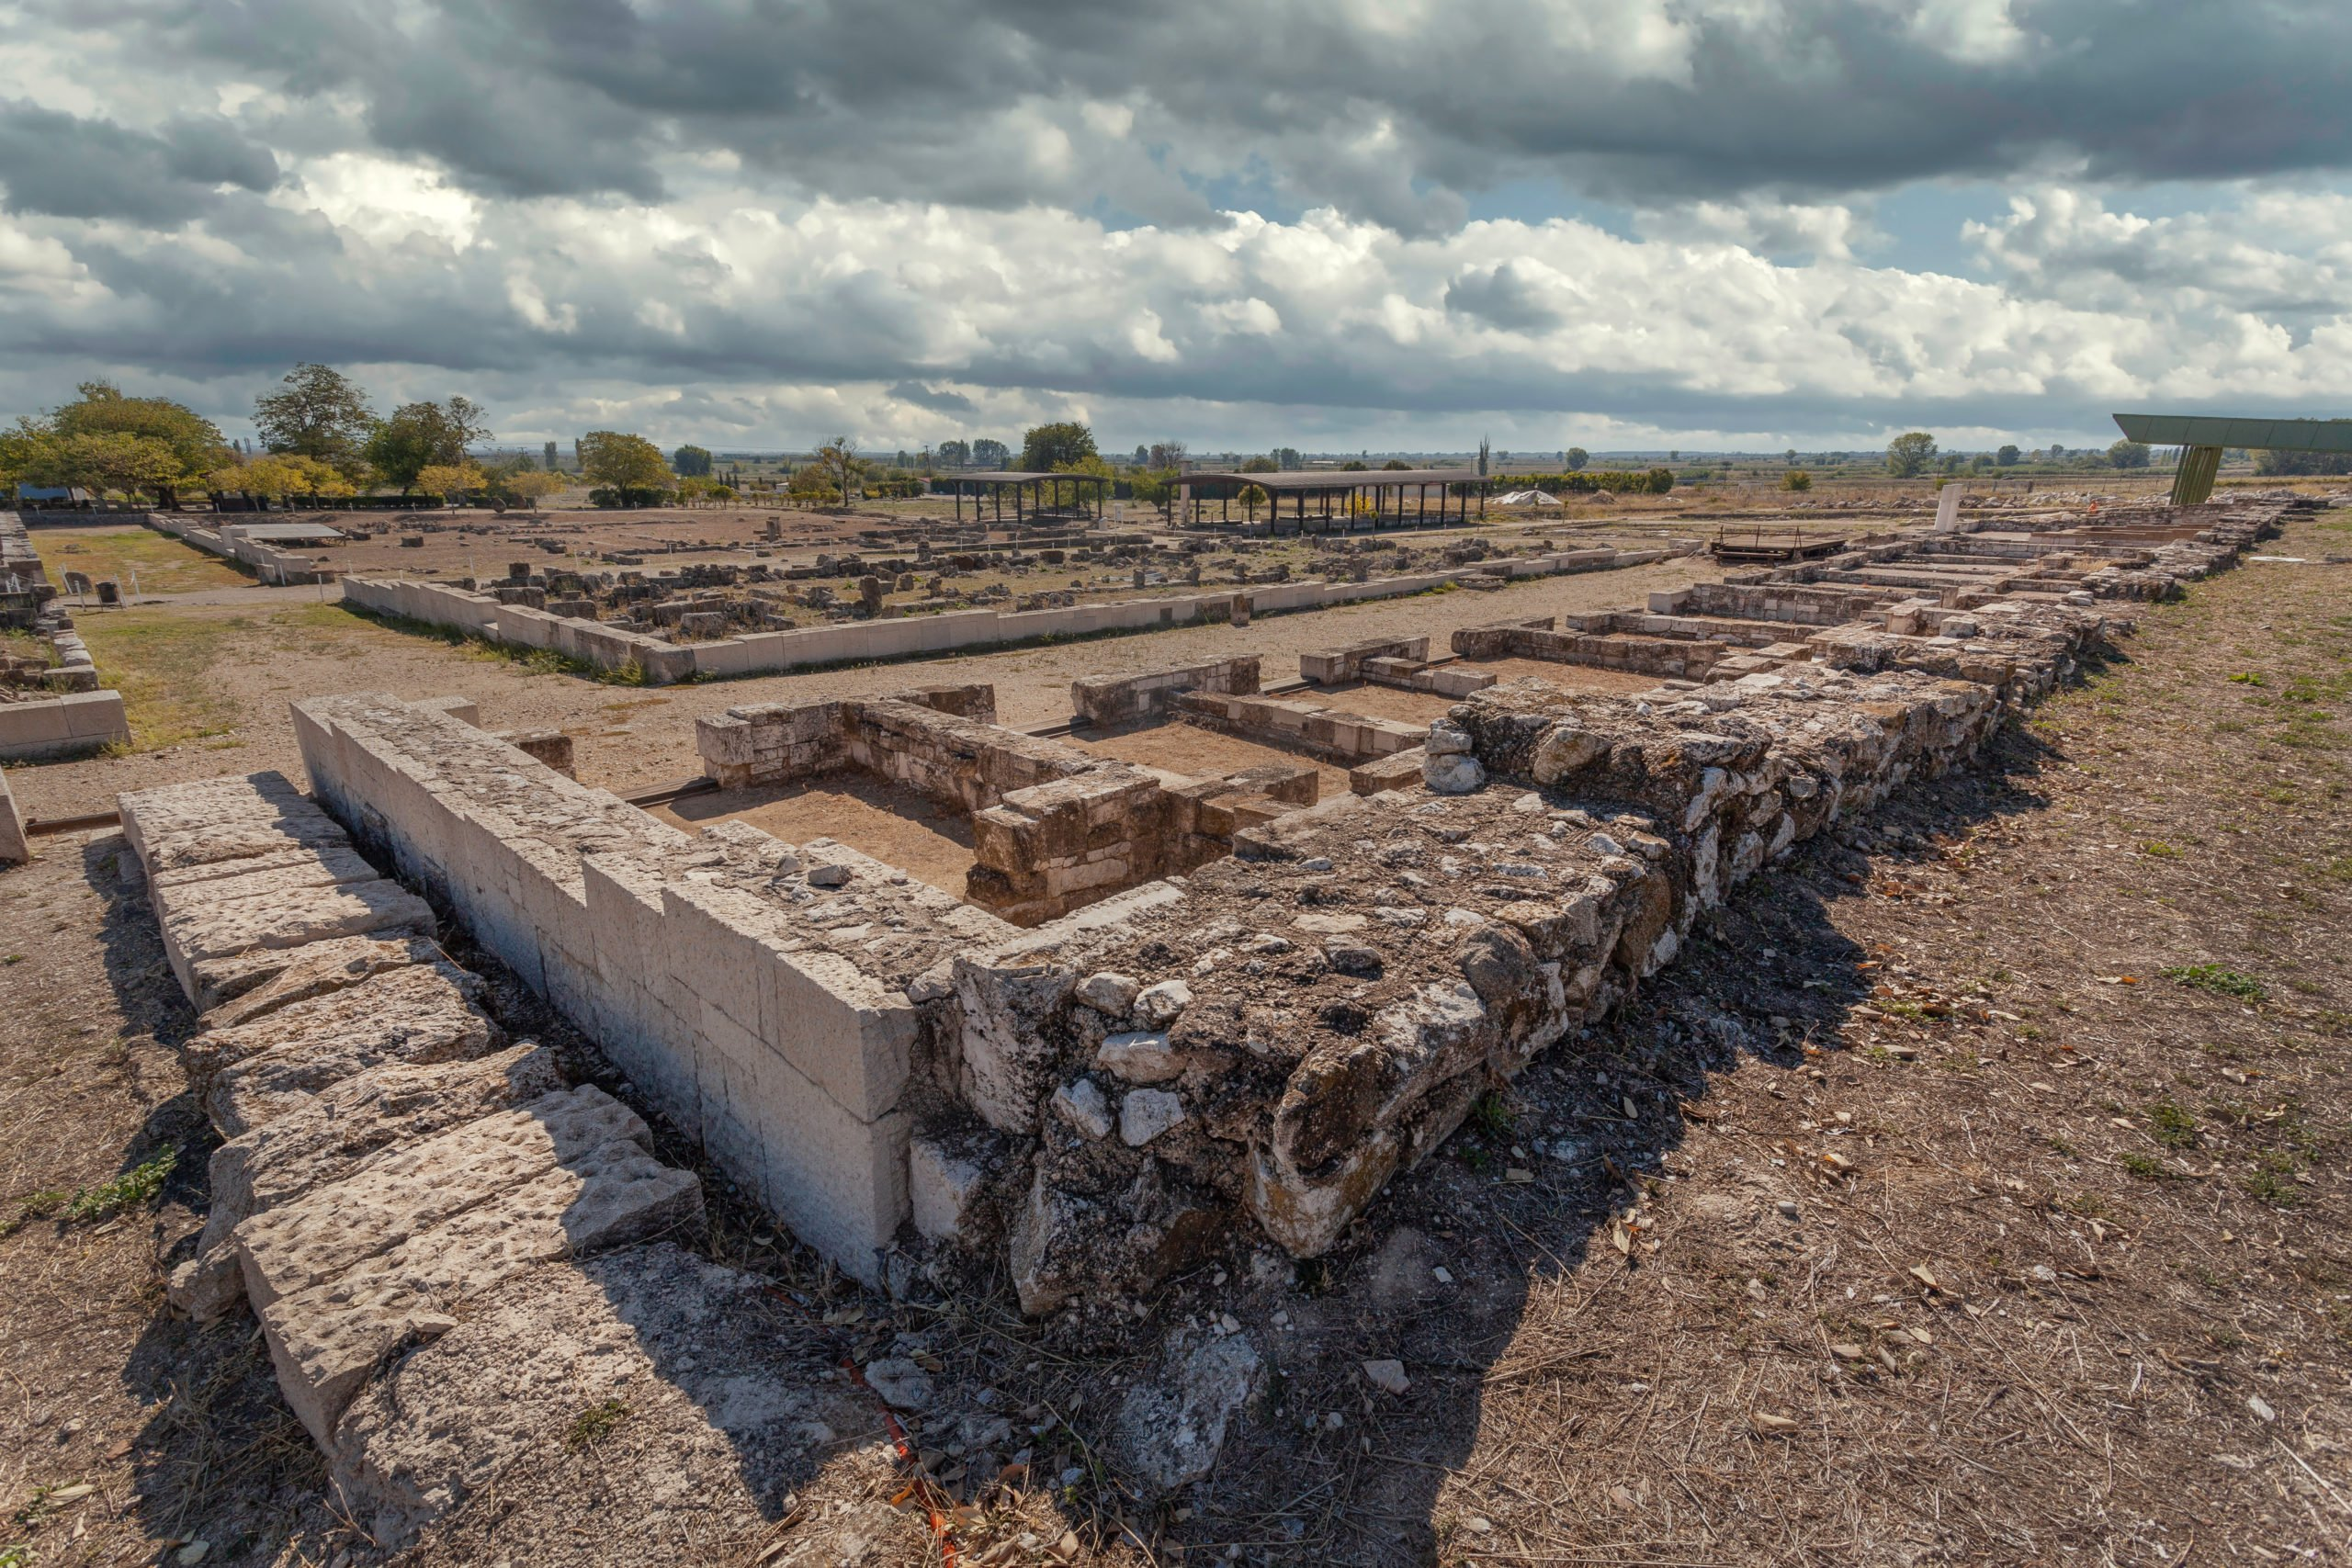 Discover The Ruins Of The Ancient Kingdom Of Macedonia On The Pella & Vergina Tour From Thessaloniki